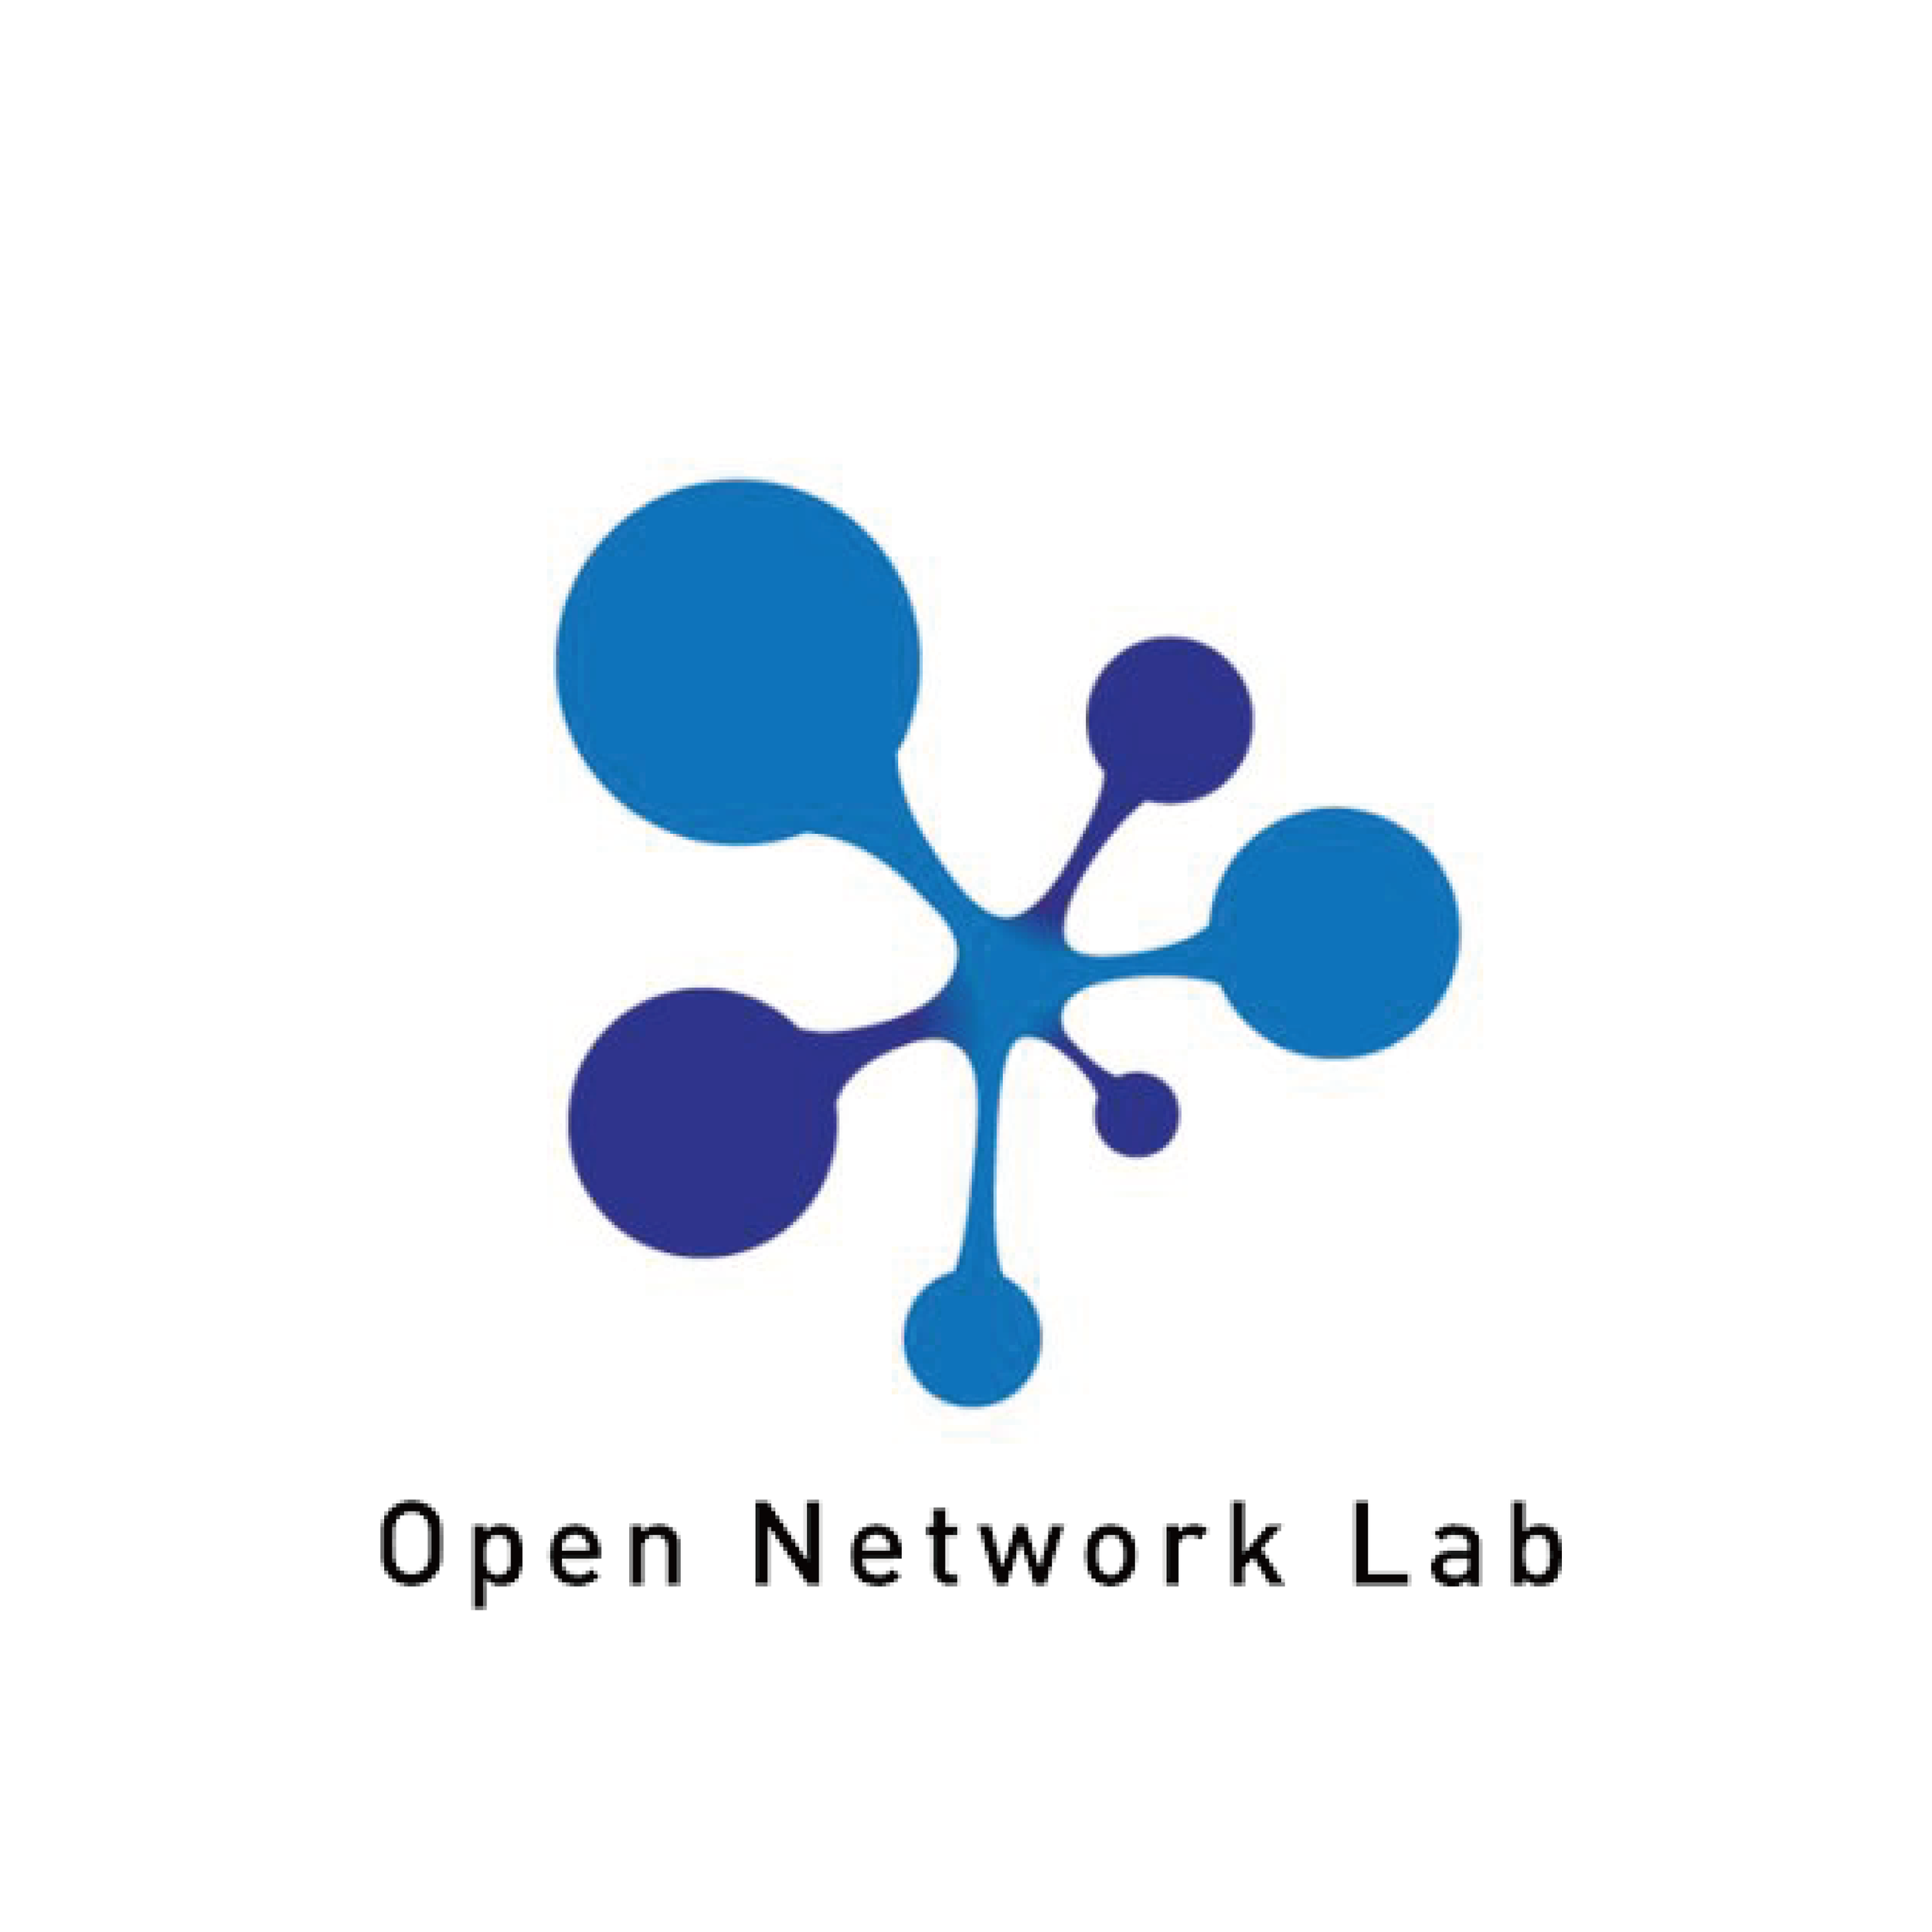 opennetworilab.png